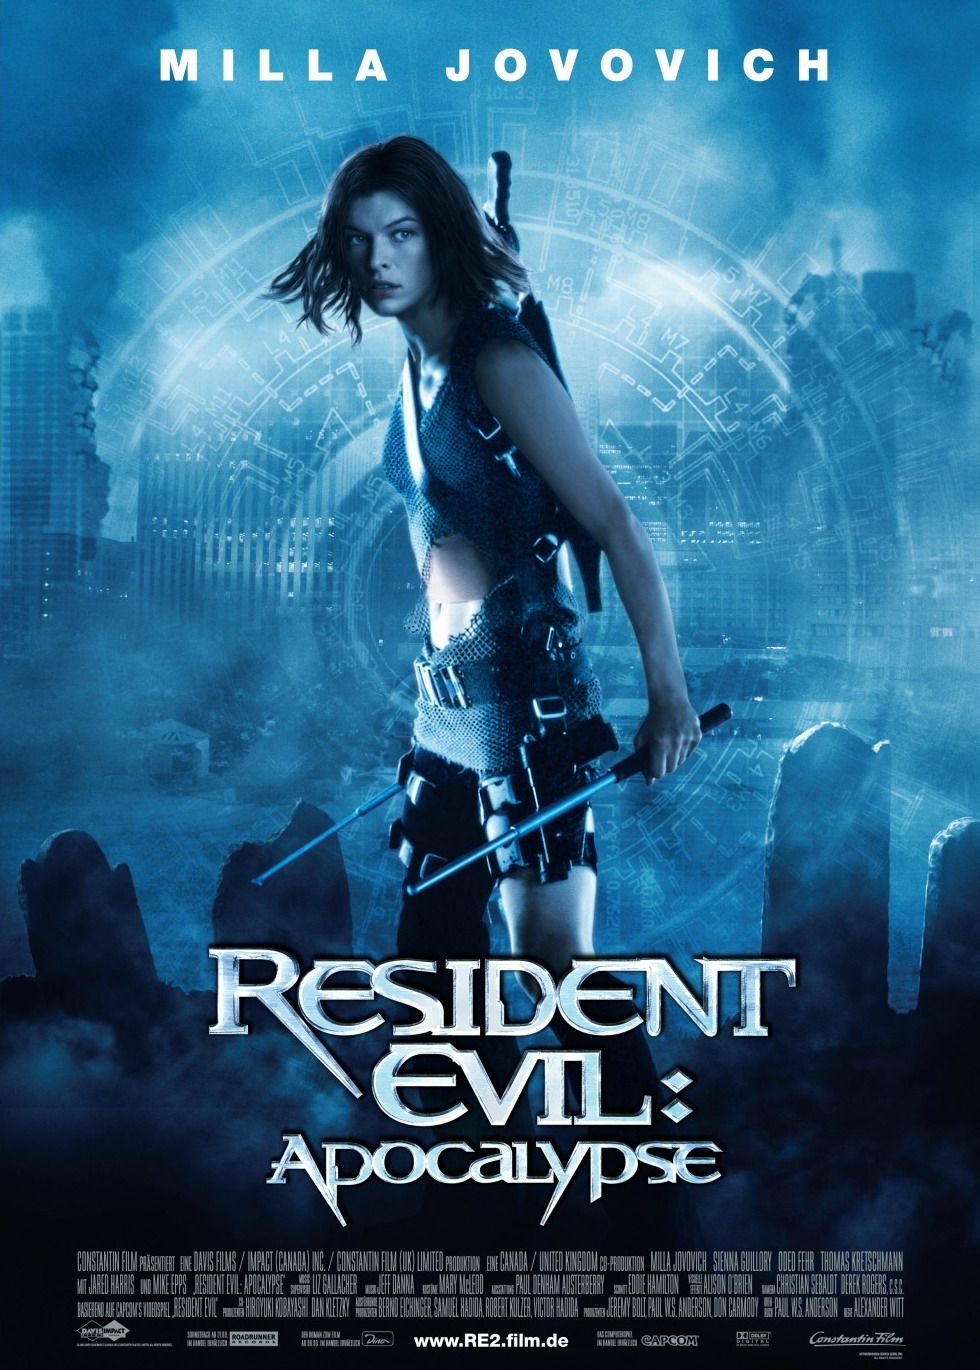 movie posters 2038   posters for movieid 980 resident evil apocalypse 2004 by alexander witt